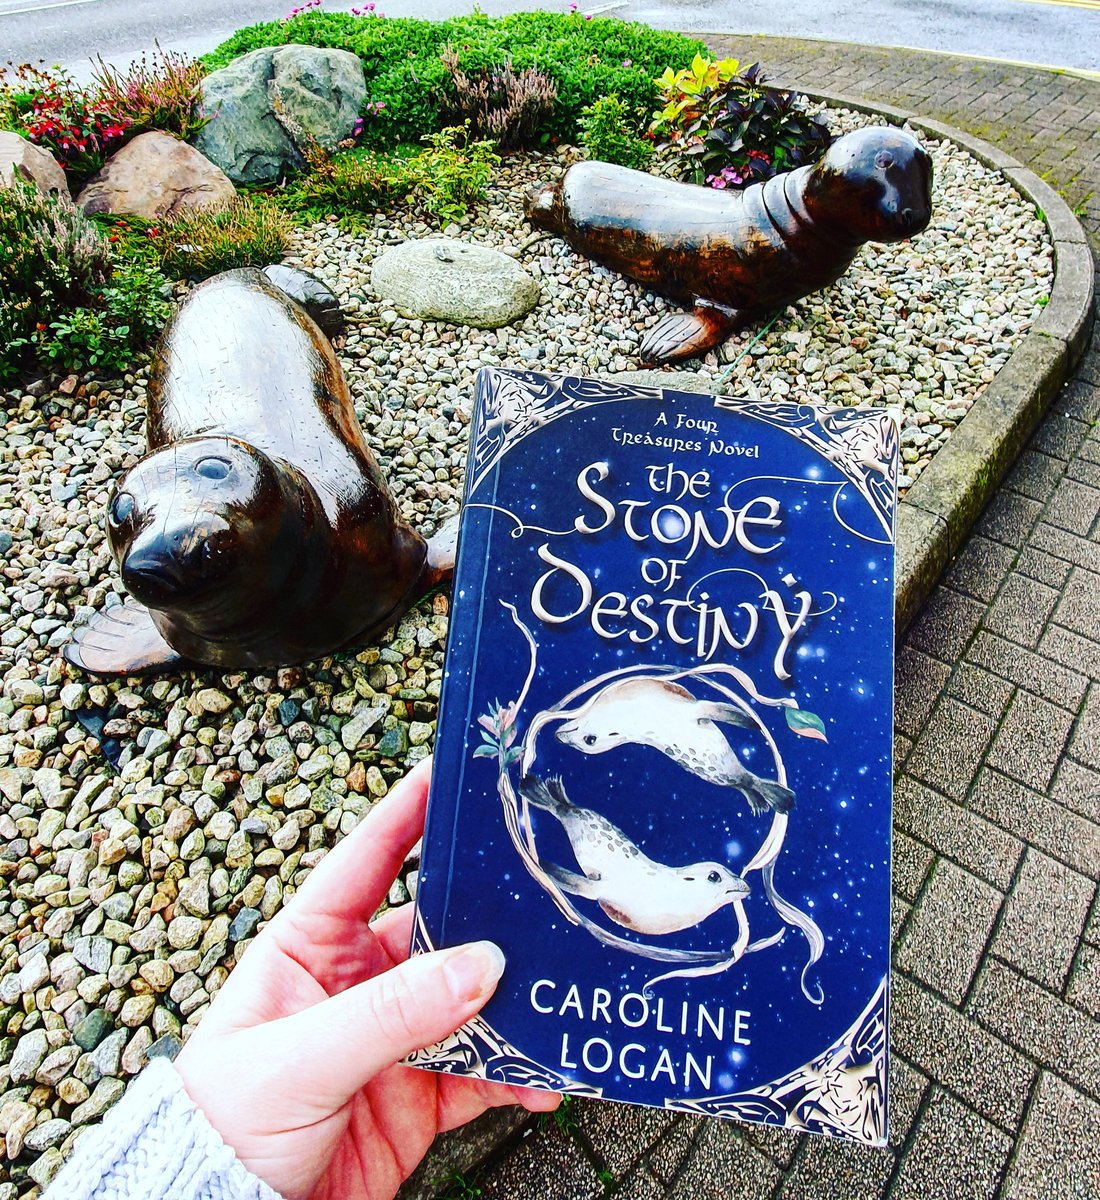 Full review of The Stone of Destiny is now up on the blog (link in bio ☝️) but its an ace new Childrens fantasy series with a strong Scottish flavour. ⭐⭐⭐⭐ #BookBlog #TheStoneOfDestiny @cranachanbooks